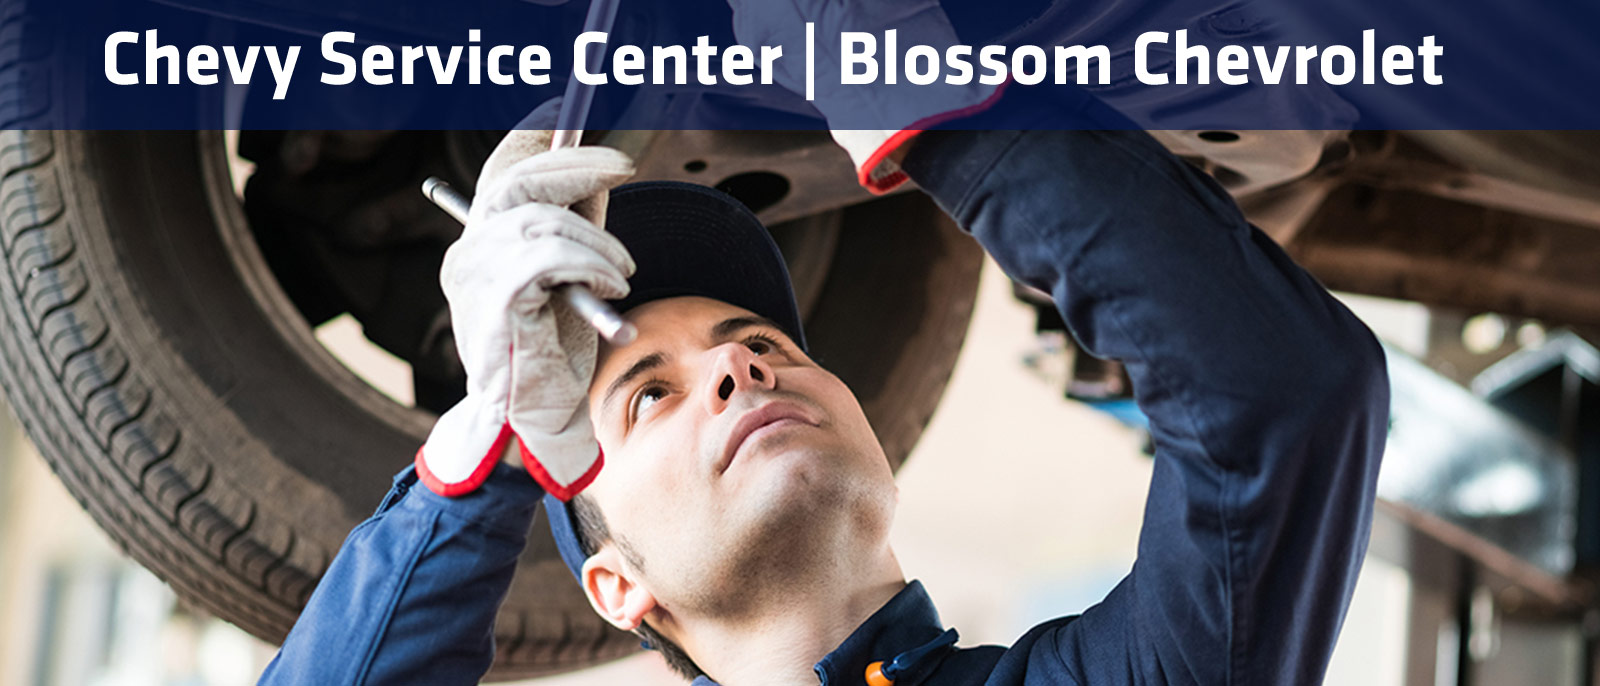 Chevy Service Center Indianapolis Blossom Chevrolet Dealership